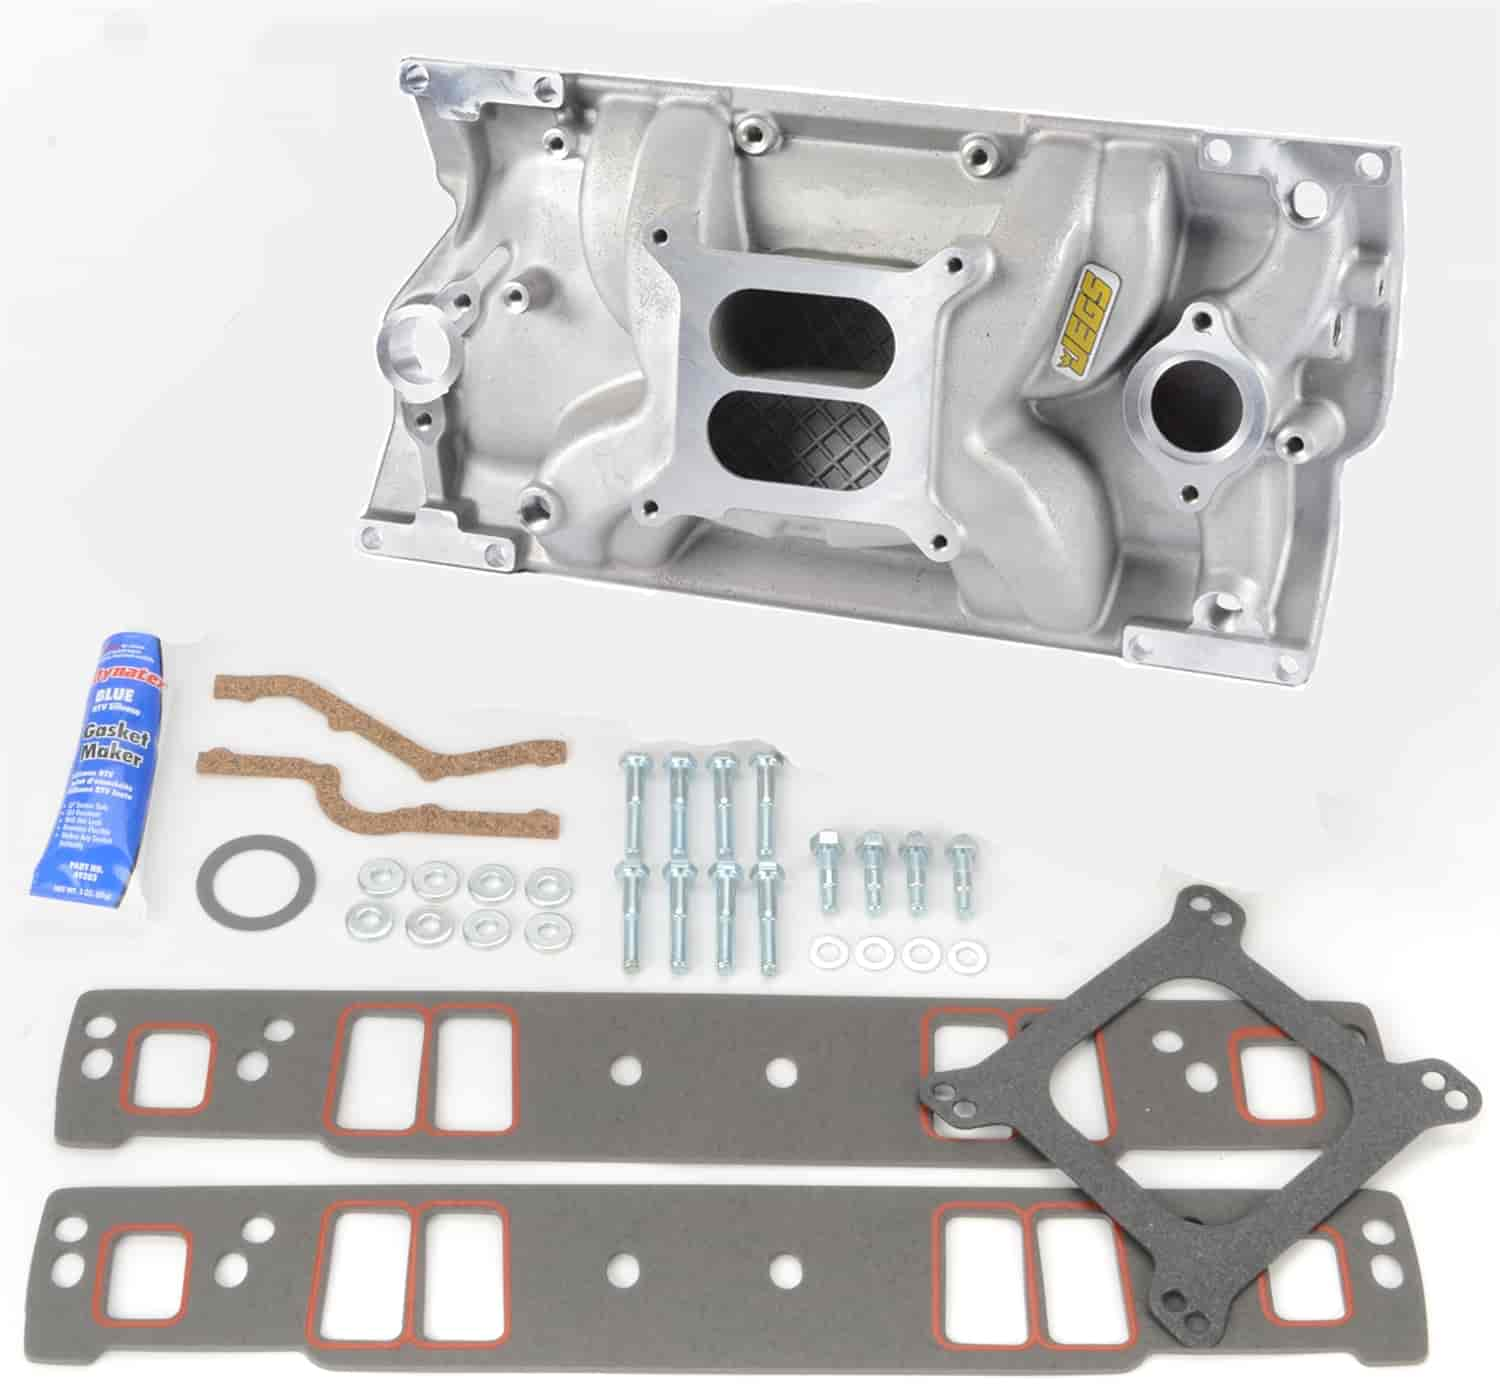 JEGS Intake Manifold with Installation Kit for Small Block Chevy with  1996-Up Vortec L31 Cast Iron Head